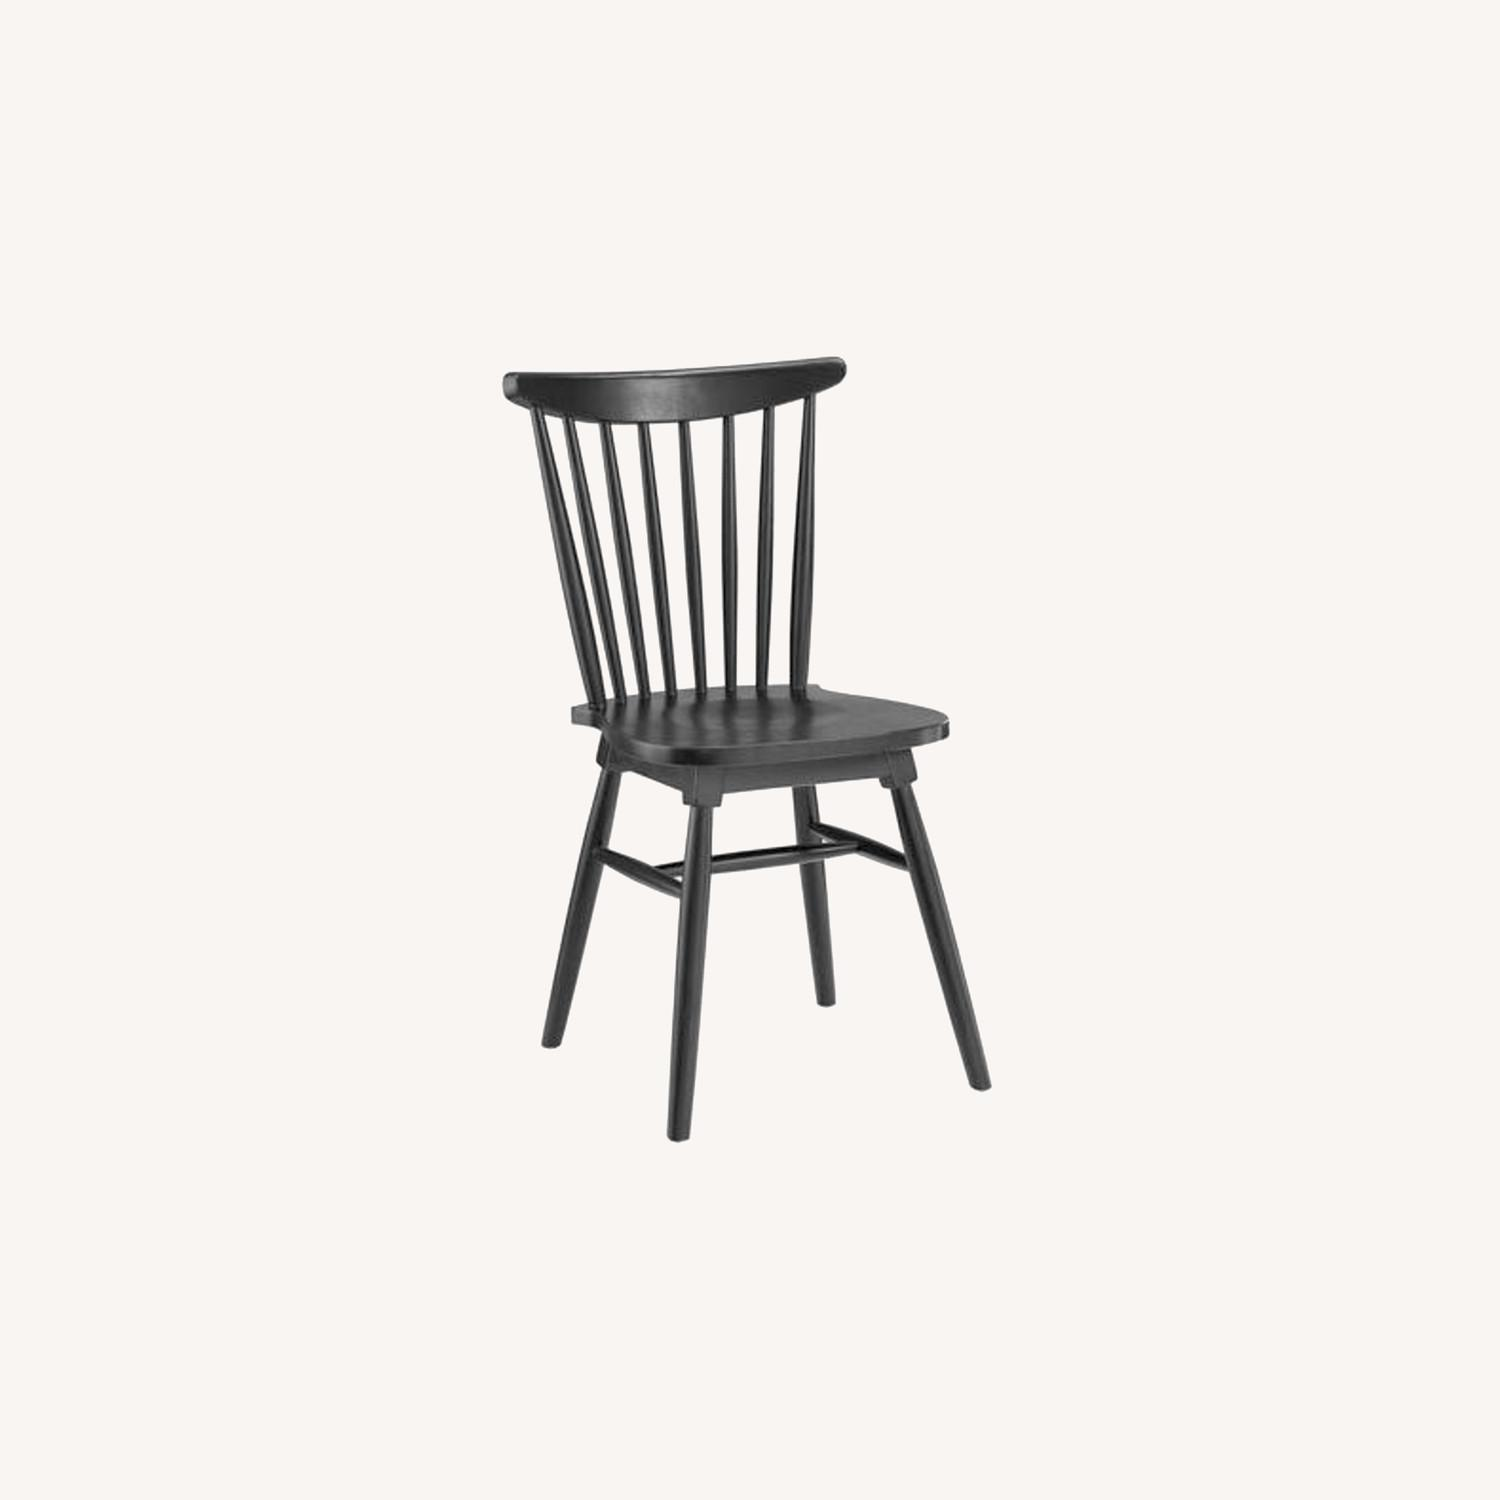 Contemporary Dining Chair In Black Elm Wood Finish - image-5